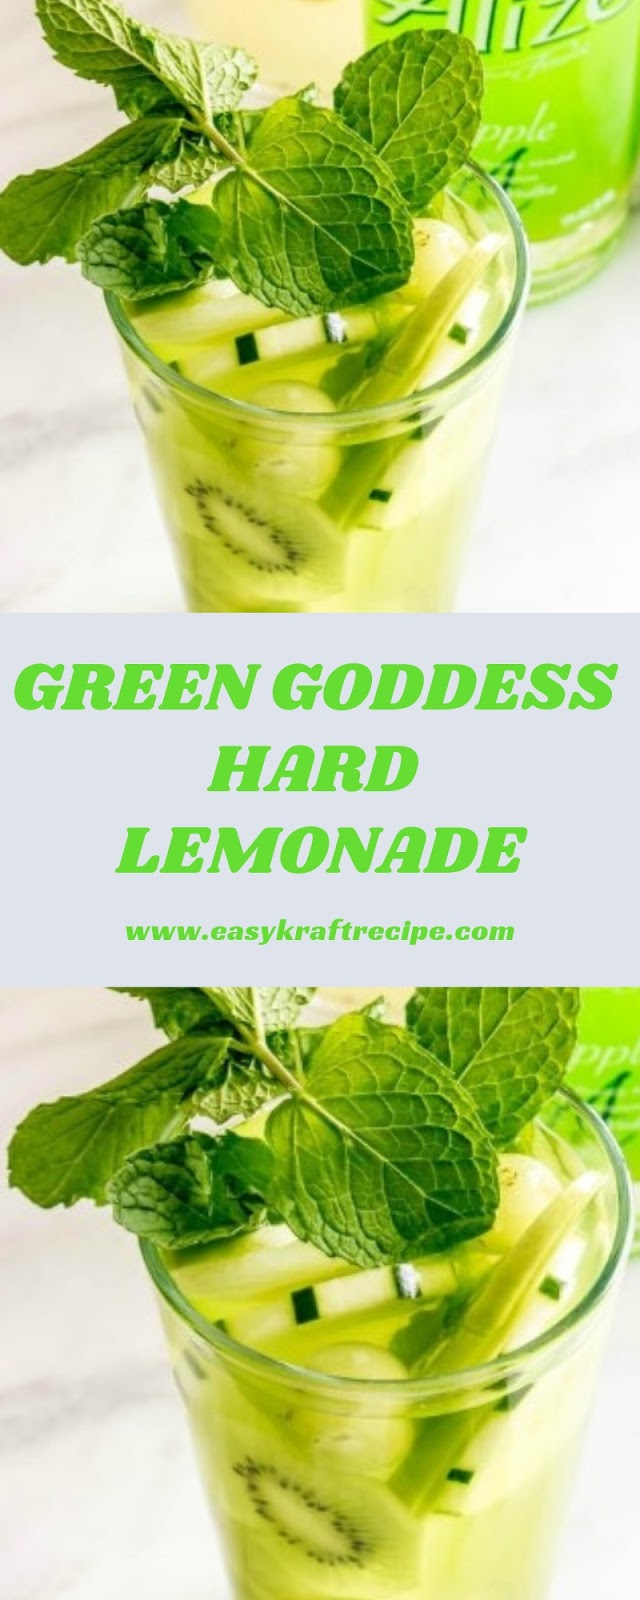 GREEN GODDESS HARD LEMONADE